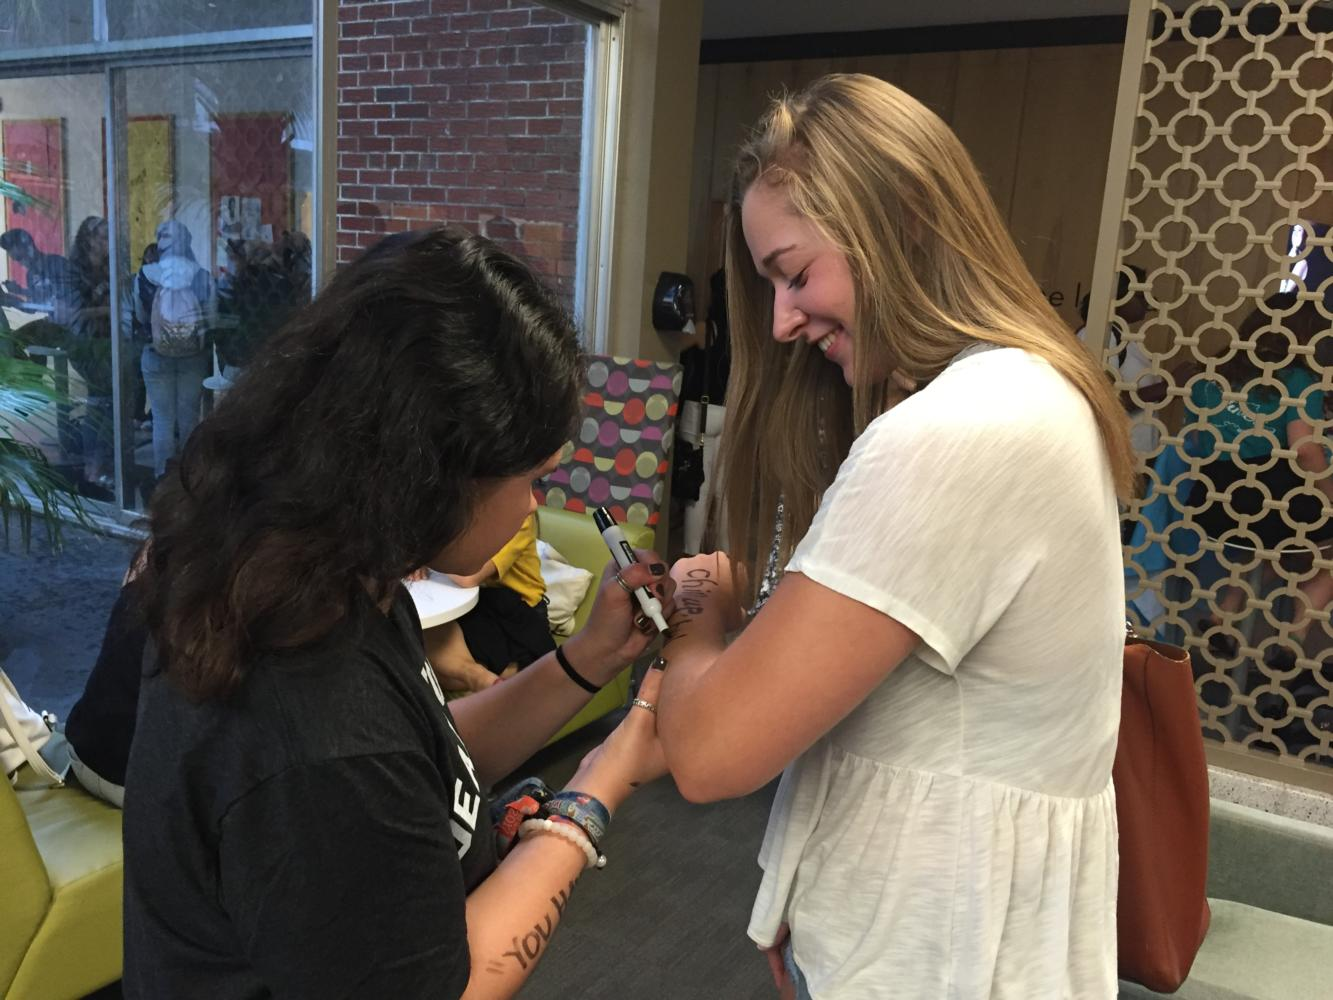 Brianna Daniel, history junior, writes a message on Brittany Webb, biology sophomore, for the Dear World event held in The Danna Center. Dear World is a photo storytelling project that has visited hundreds of college campuses. Photo credit: Erin Snodgrass